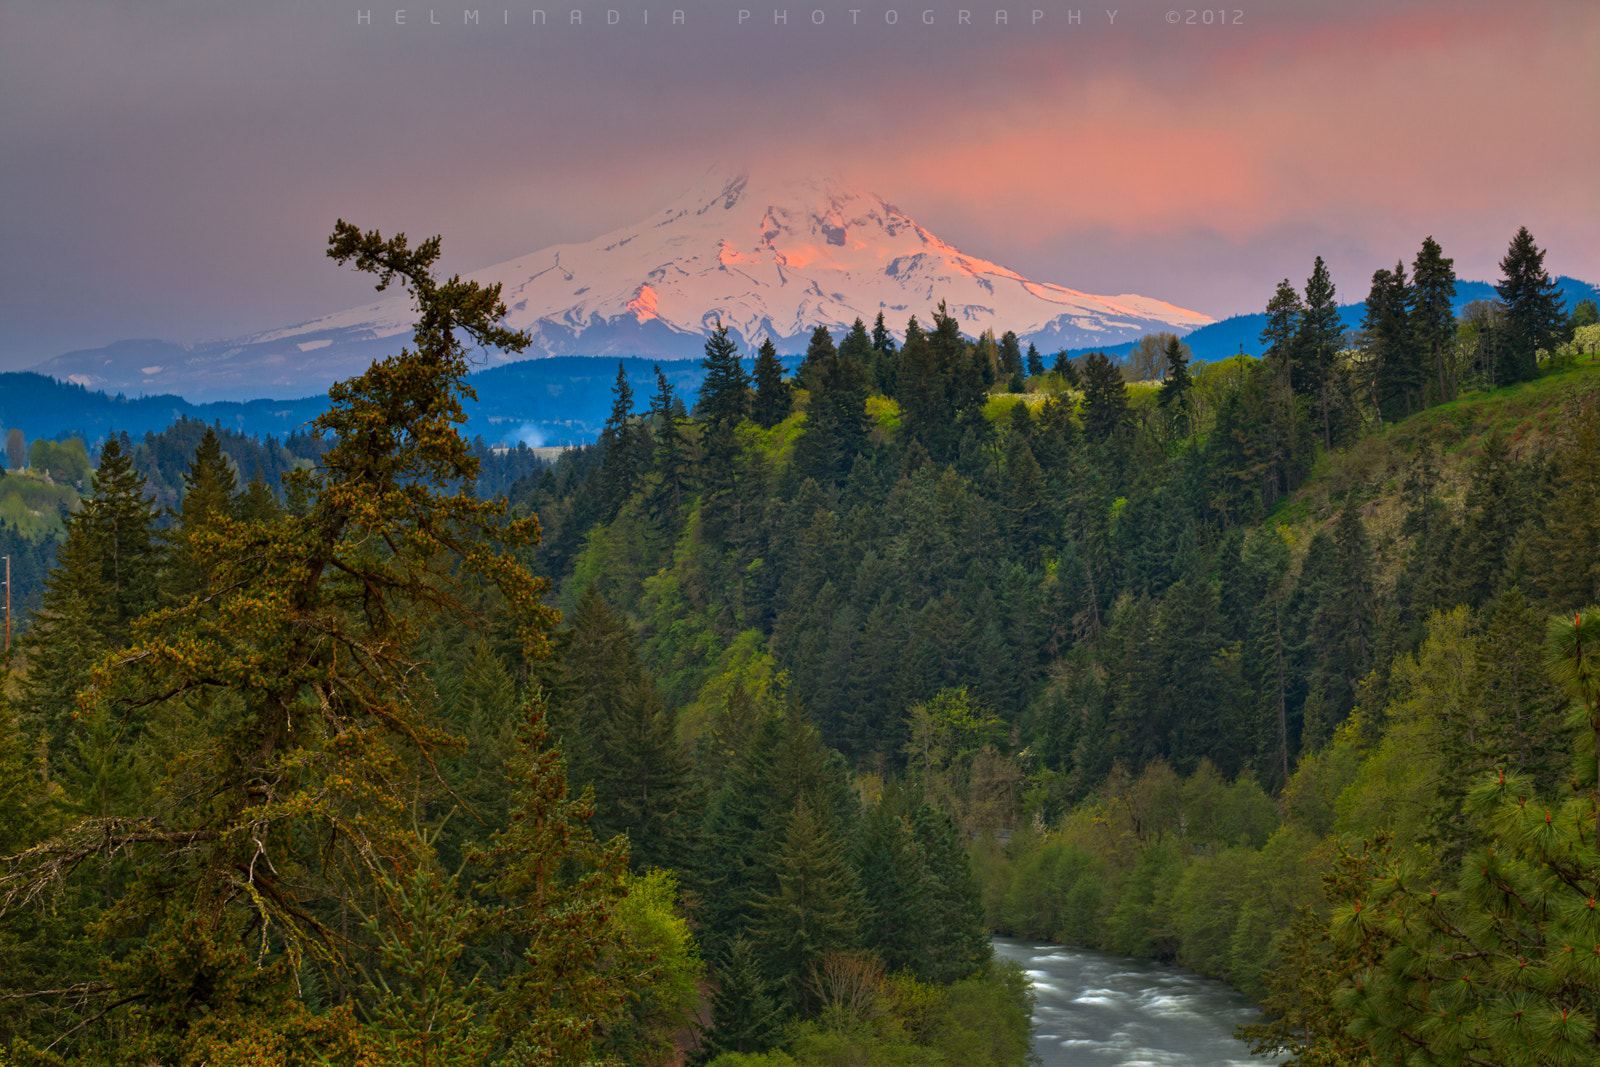 Photograph Mount Hood by Helminadia Ranford on 500px